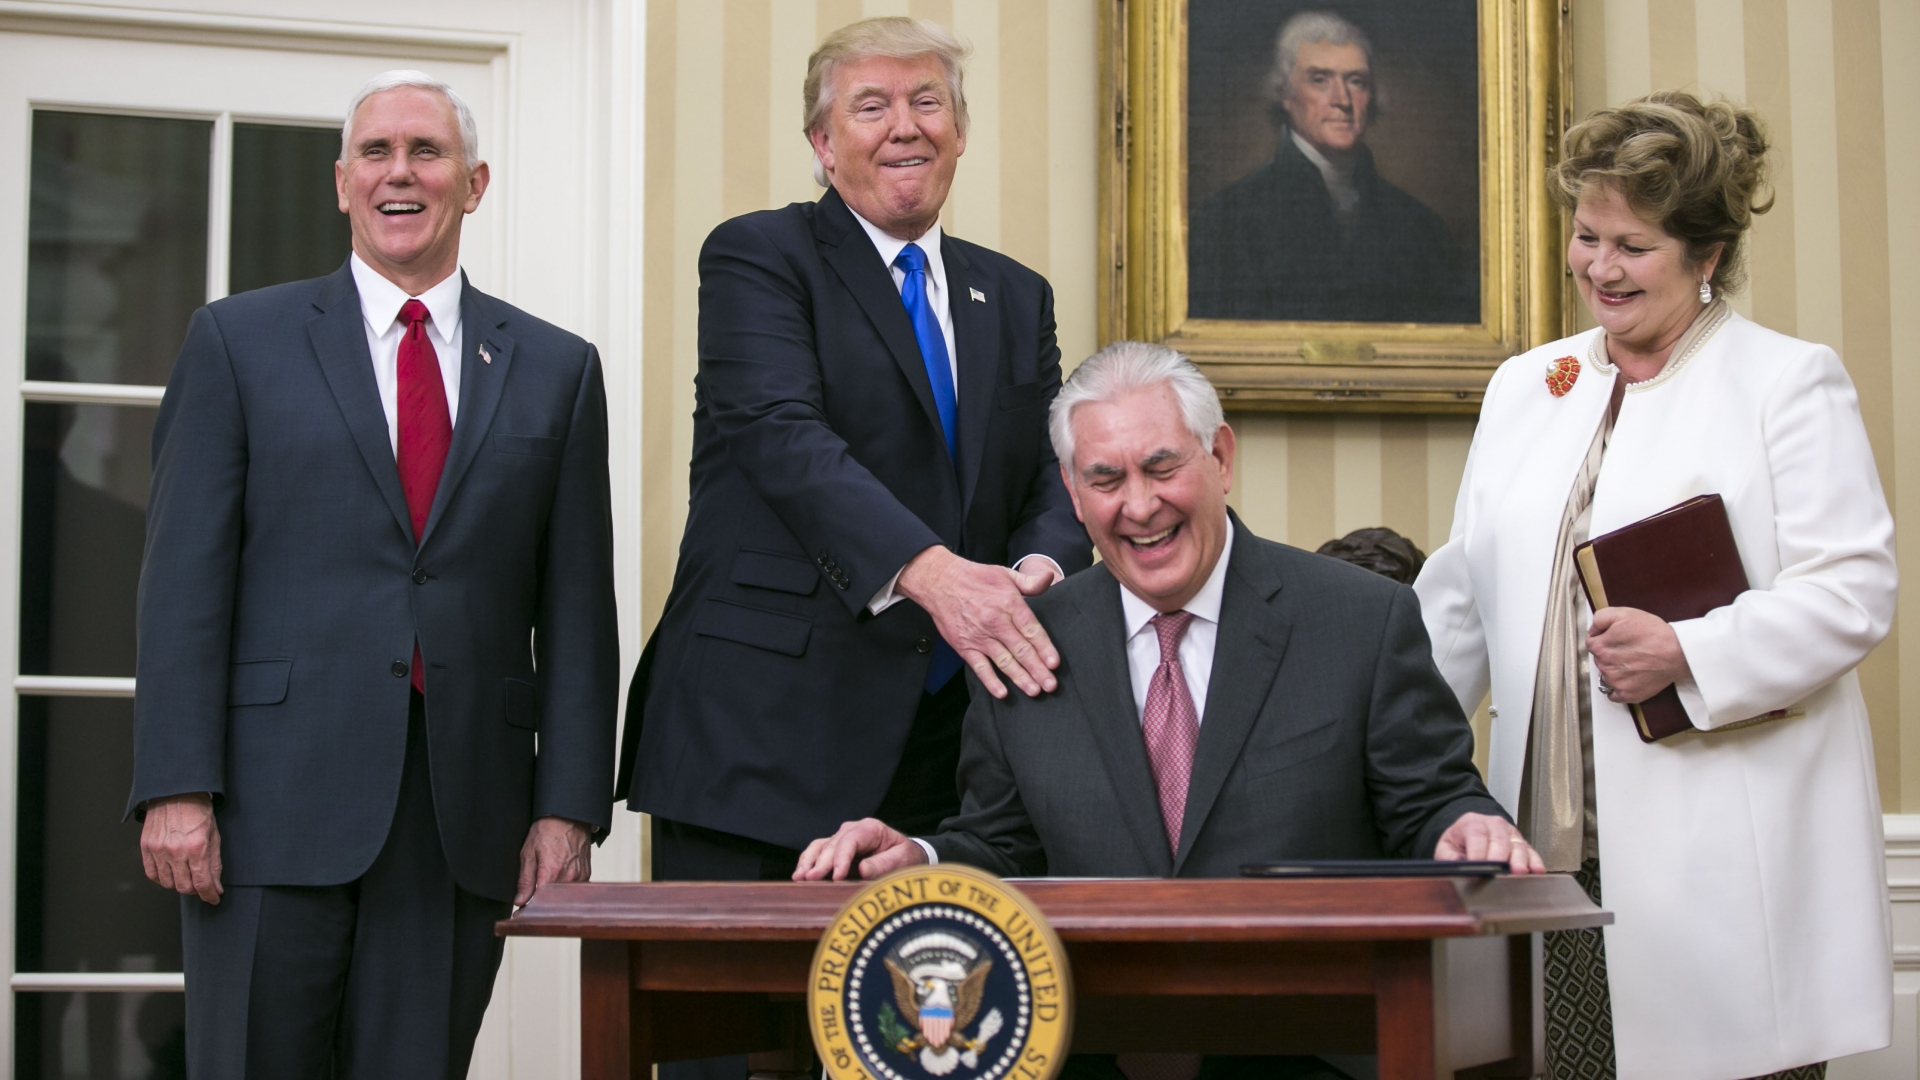 Rex Tillerson with his wife after being sworn in as Secretary of State by President Donald Trump and Vice President Mike Pence in the Oval Office of the White House, February 1, 2017. (Credit: Al Drago/The New York Times/Redux)